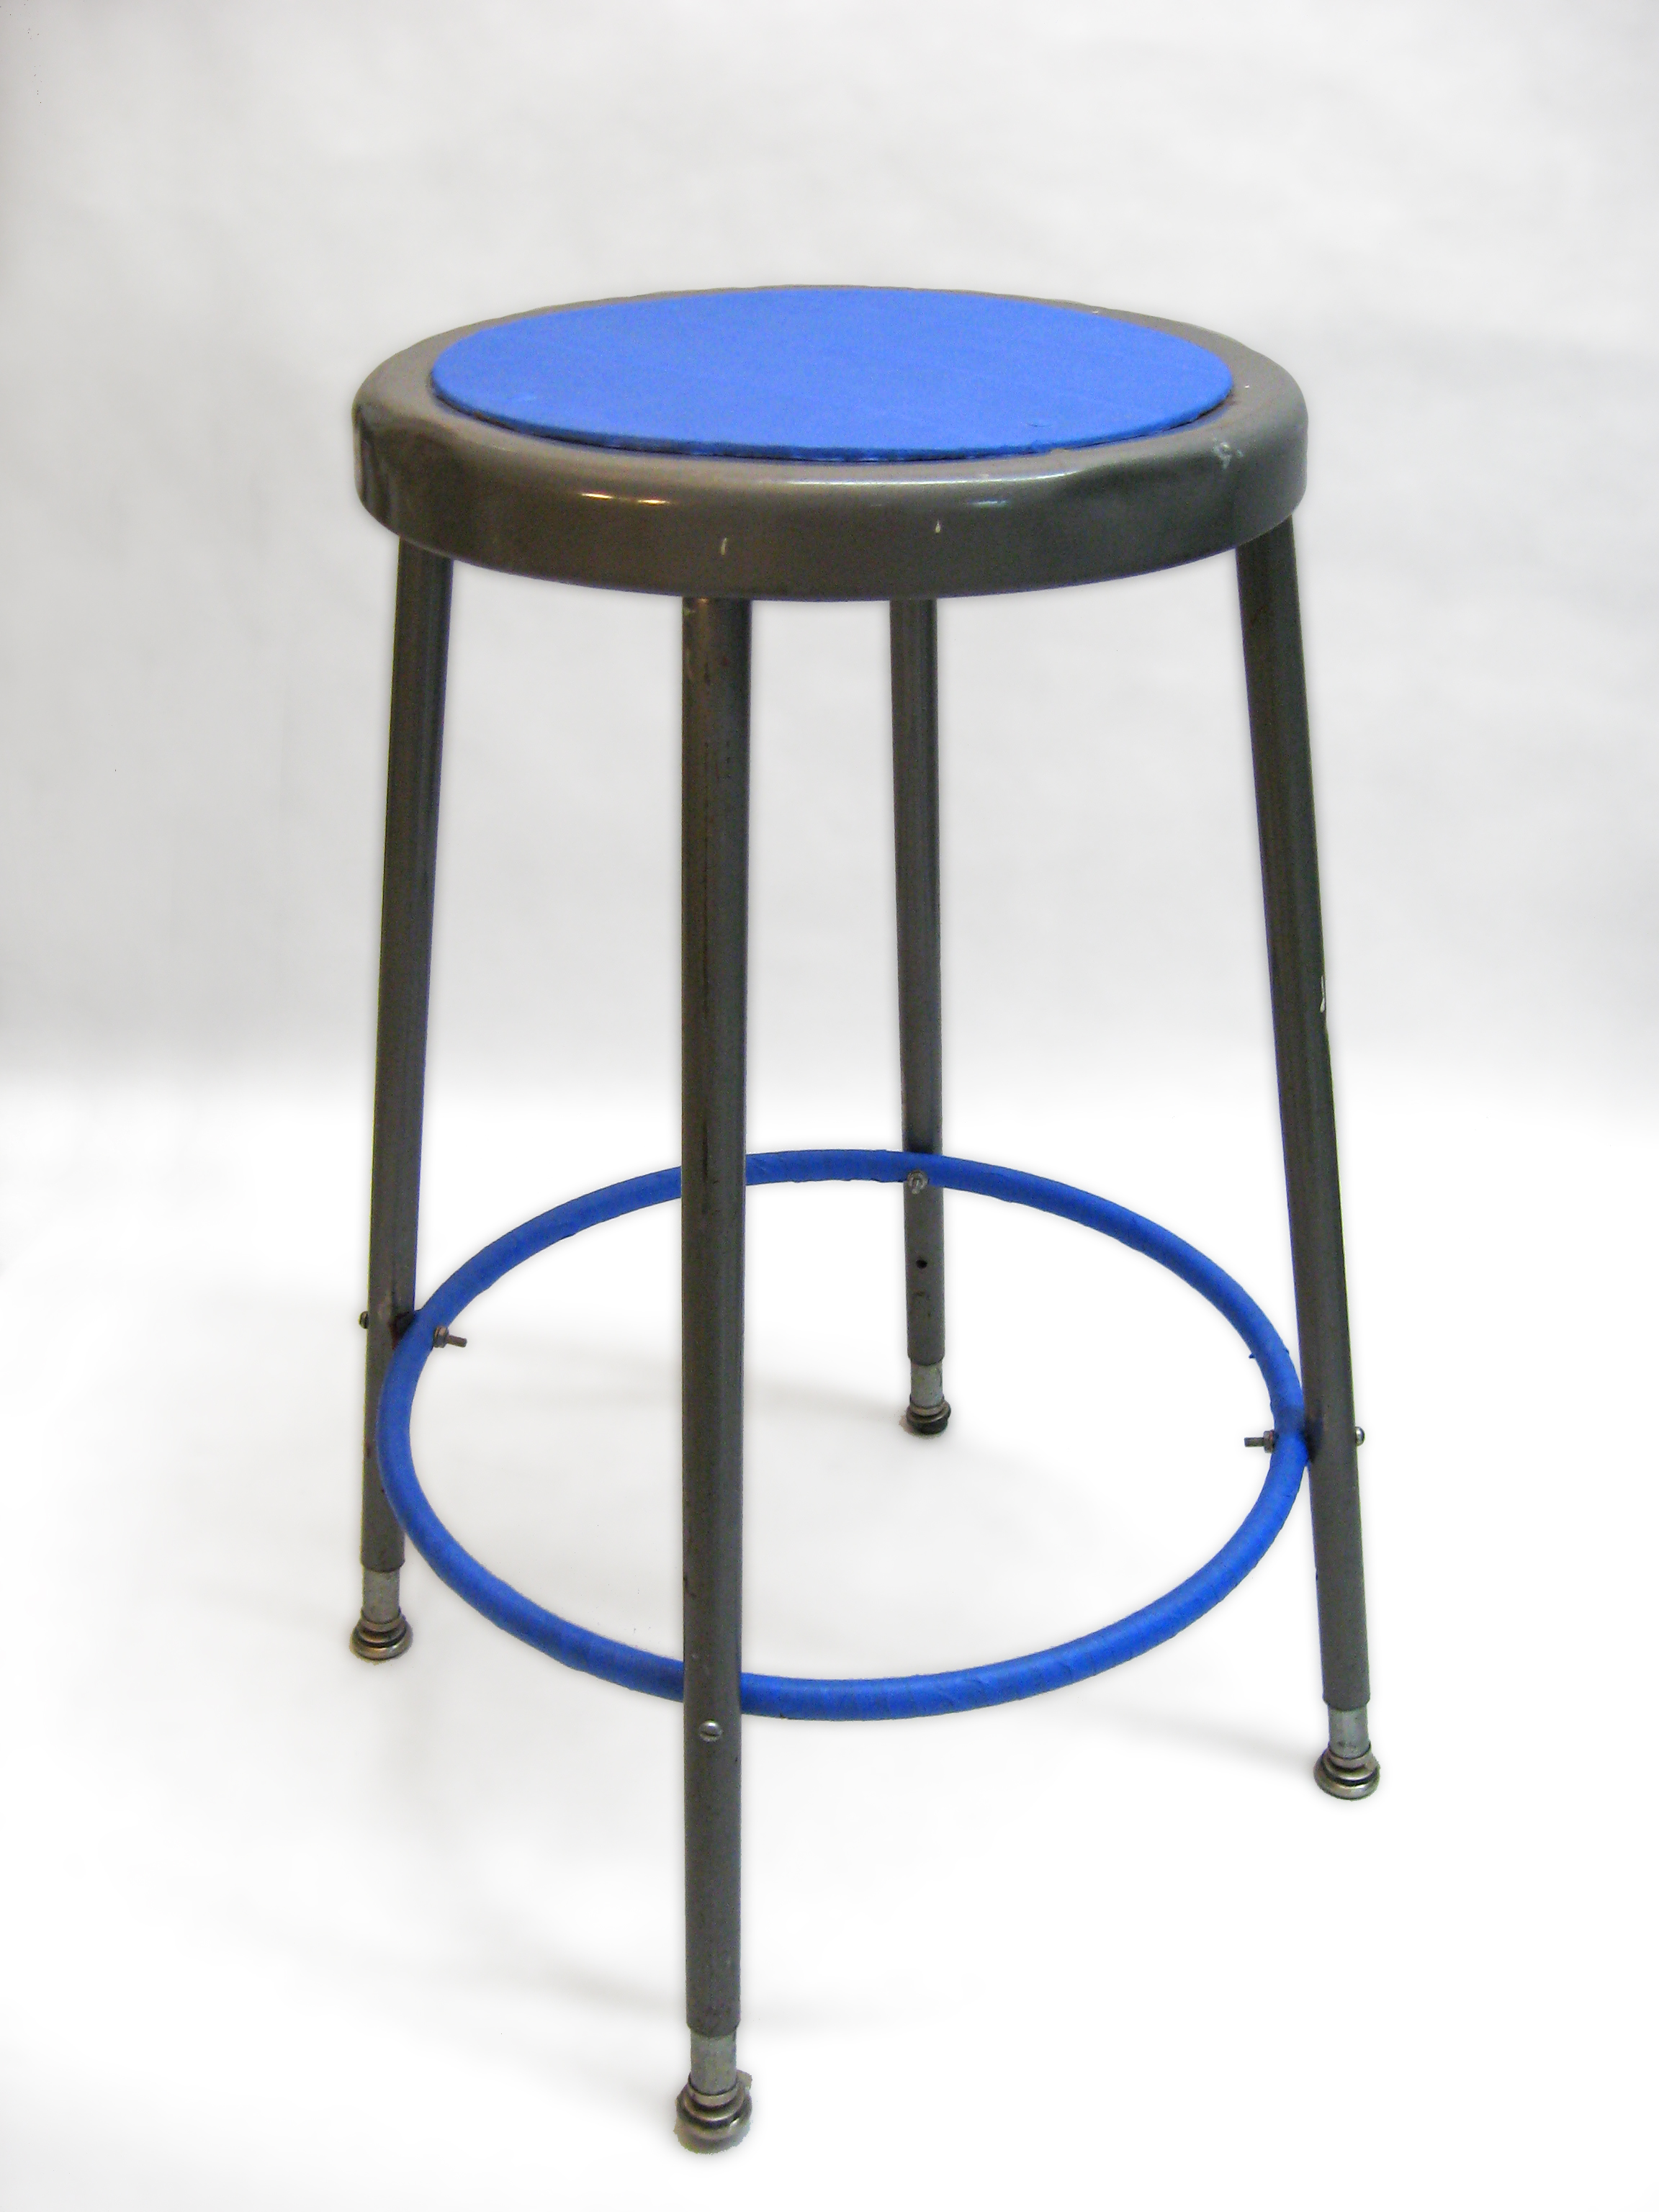 Artist Stools   Bringing Worn Down Studio Chairs To Life With Your Everyday  Painters Tape. Tape Was Carefully Placed On Areas Where The Body Makes  Contact ...